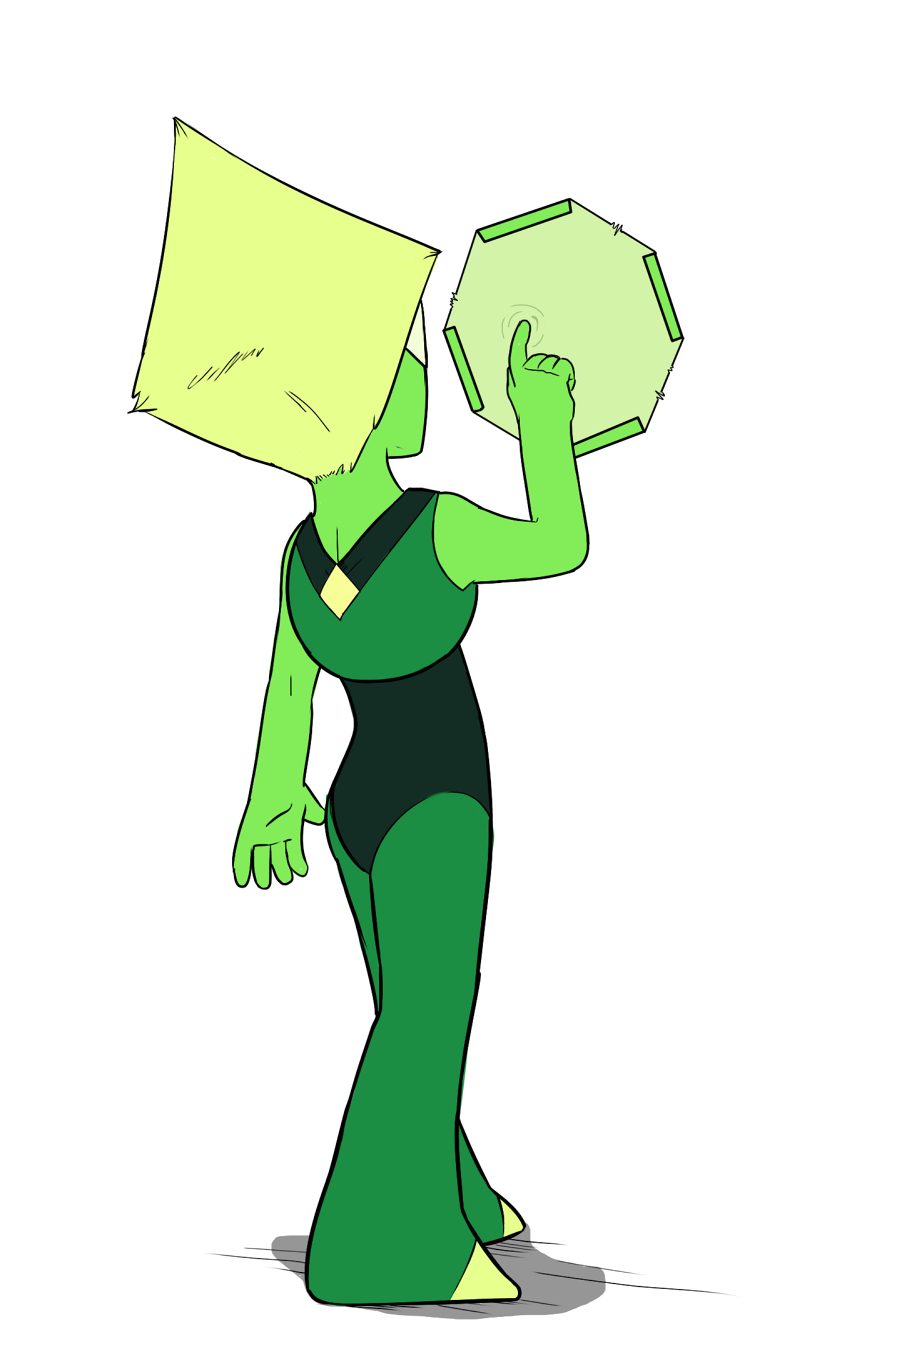 Peridot doin' her thing.   —   Commissions are open. See my drawings here. Shoot me a DM.